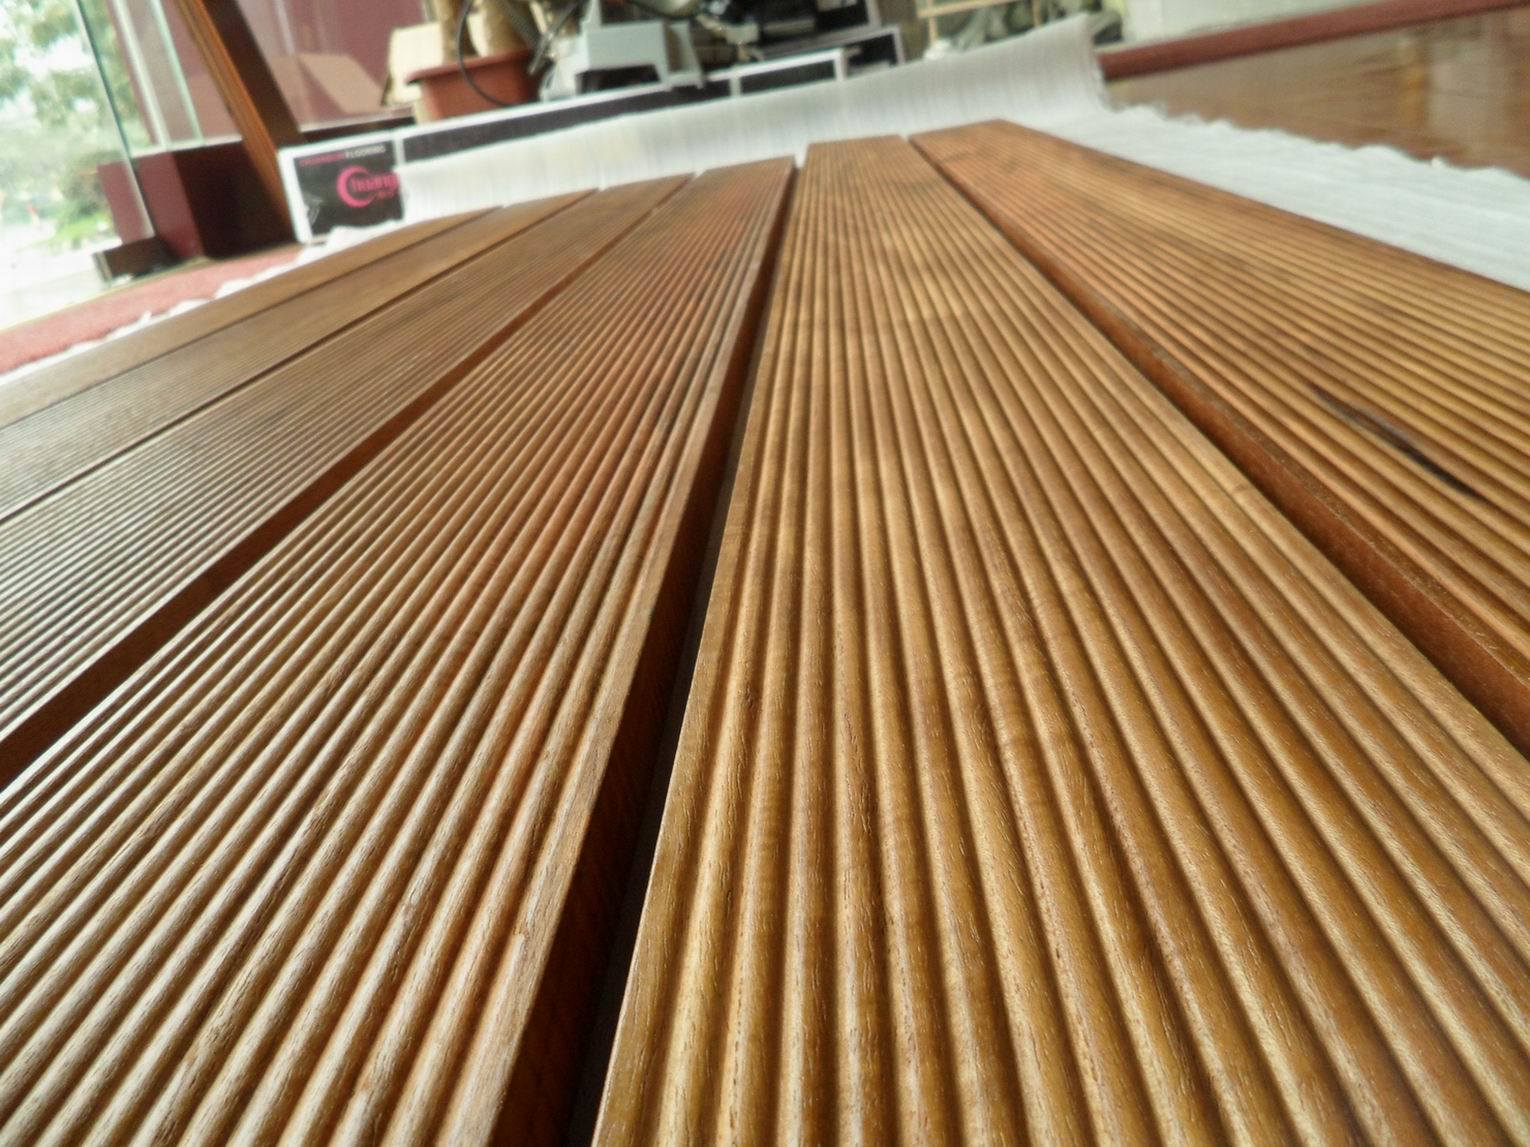 China burma teak hardwood timber decking btd xviii for Hardwood timber decking